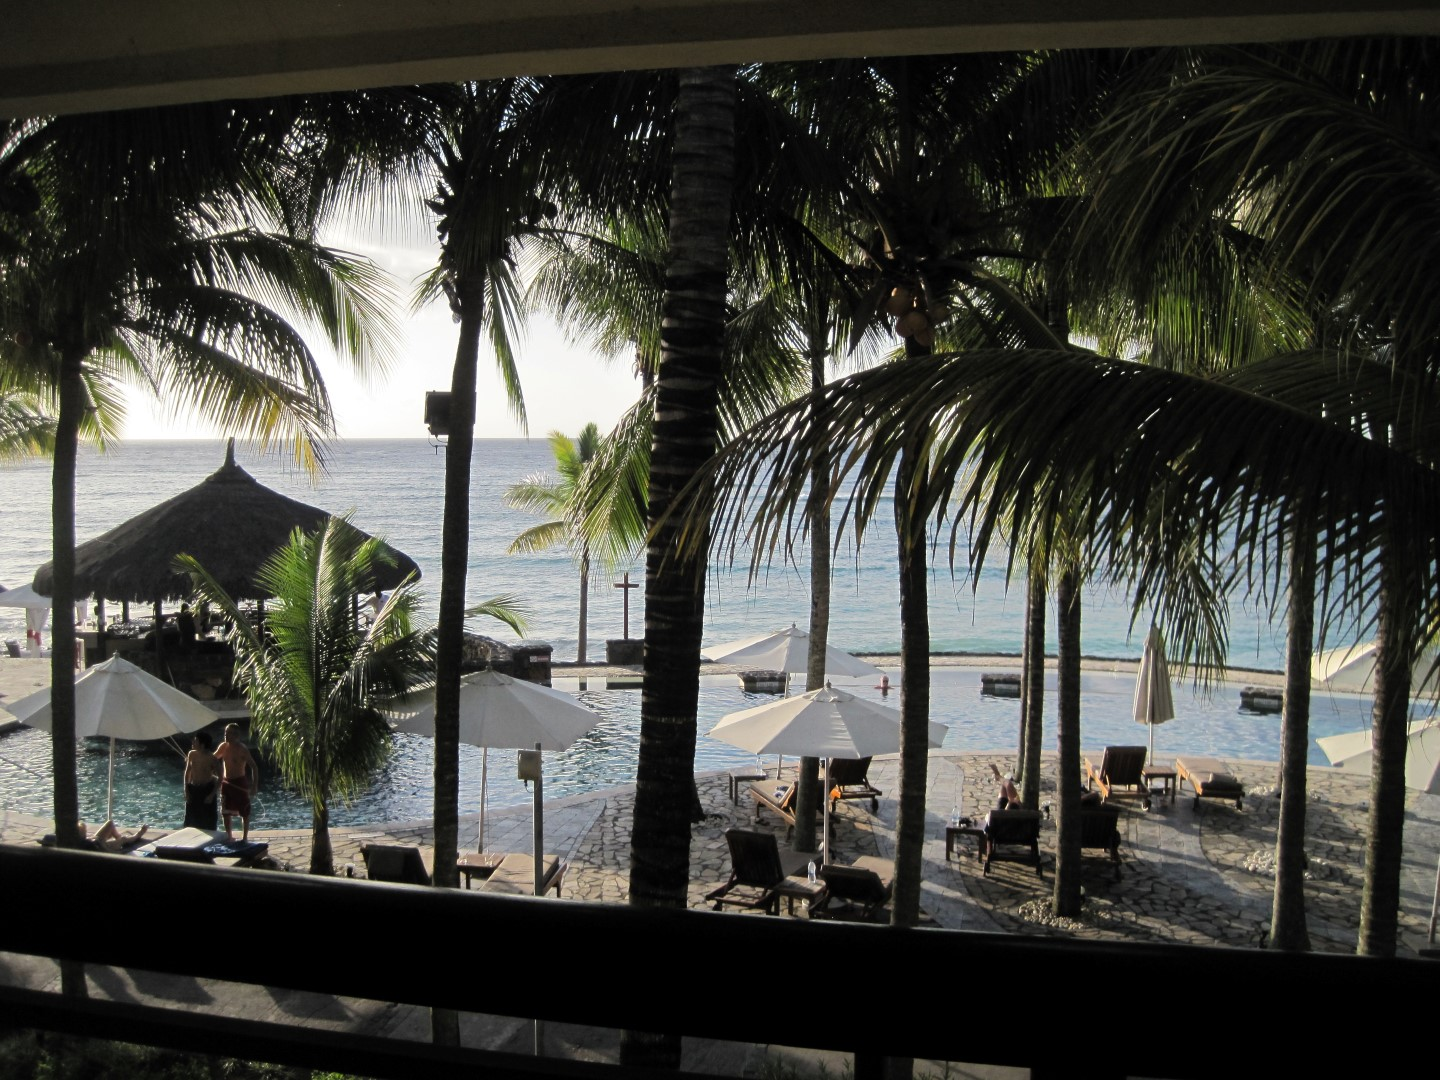 Budget Travel and Travel Hacking: The view of the Indian Ocean from our Le Meridian Room